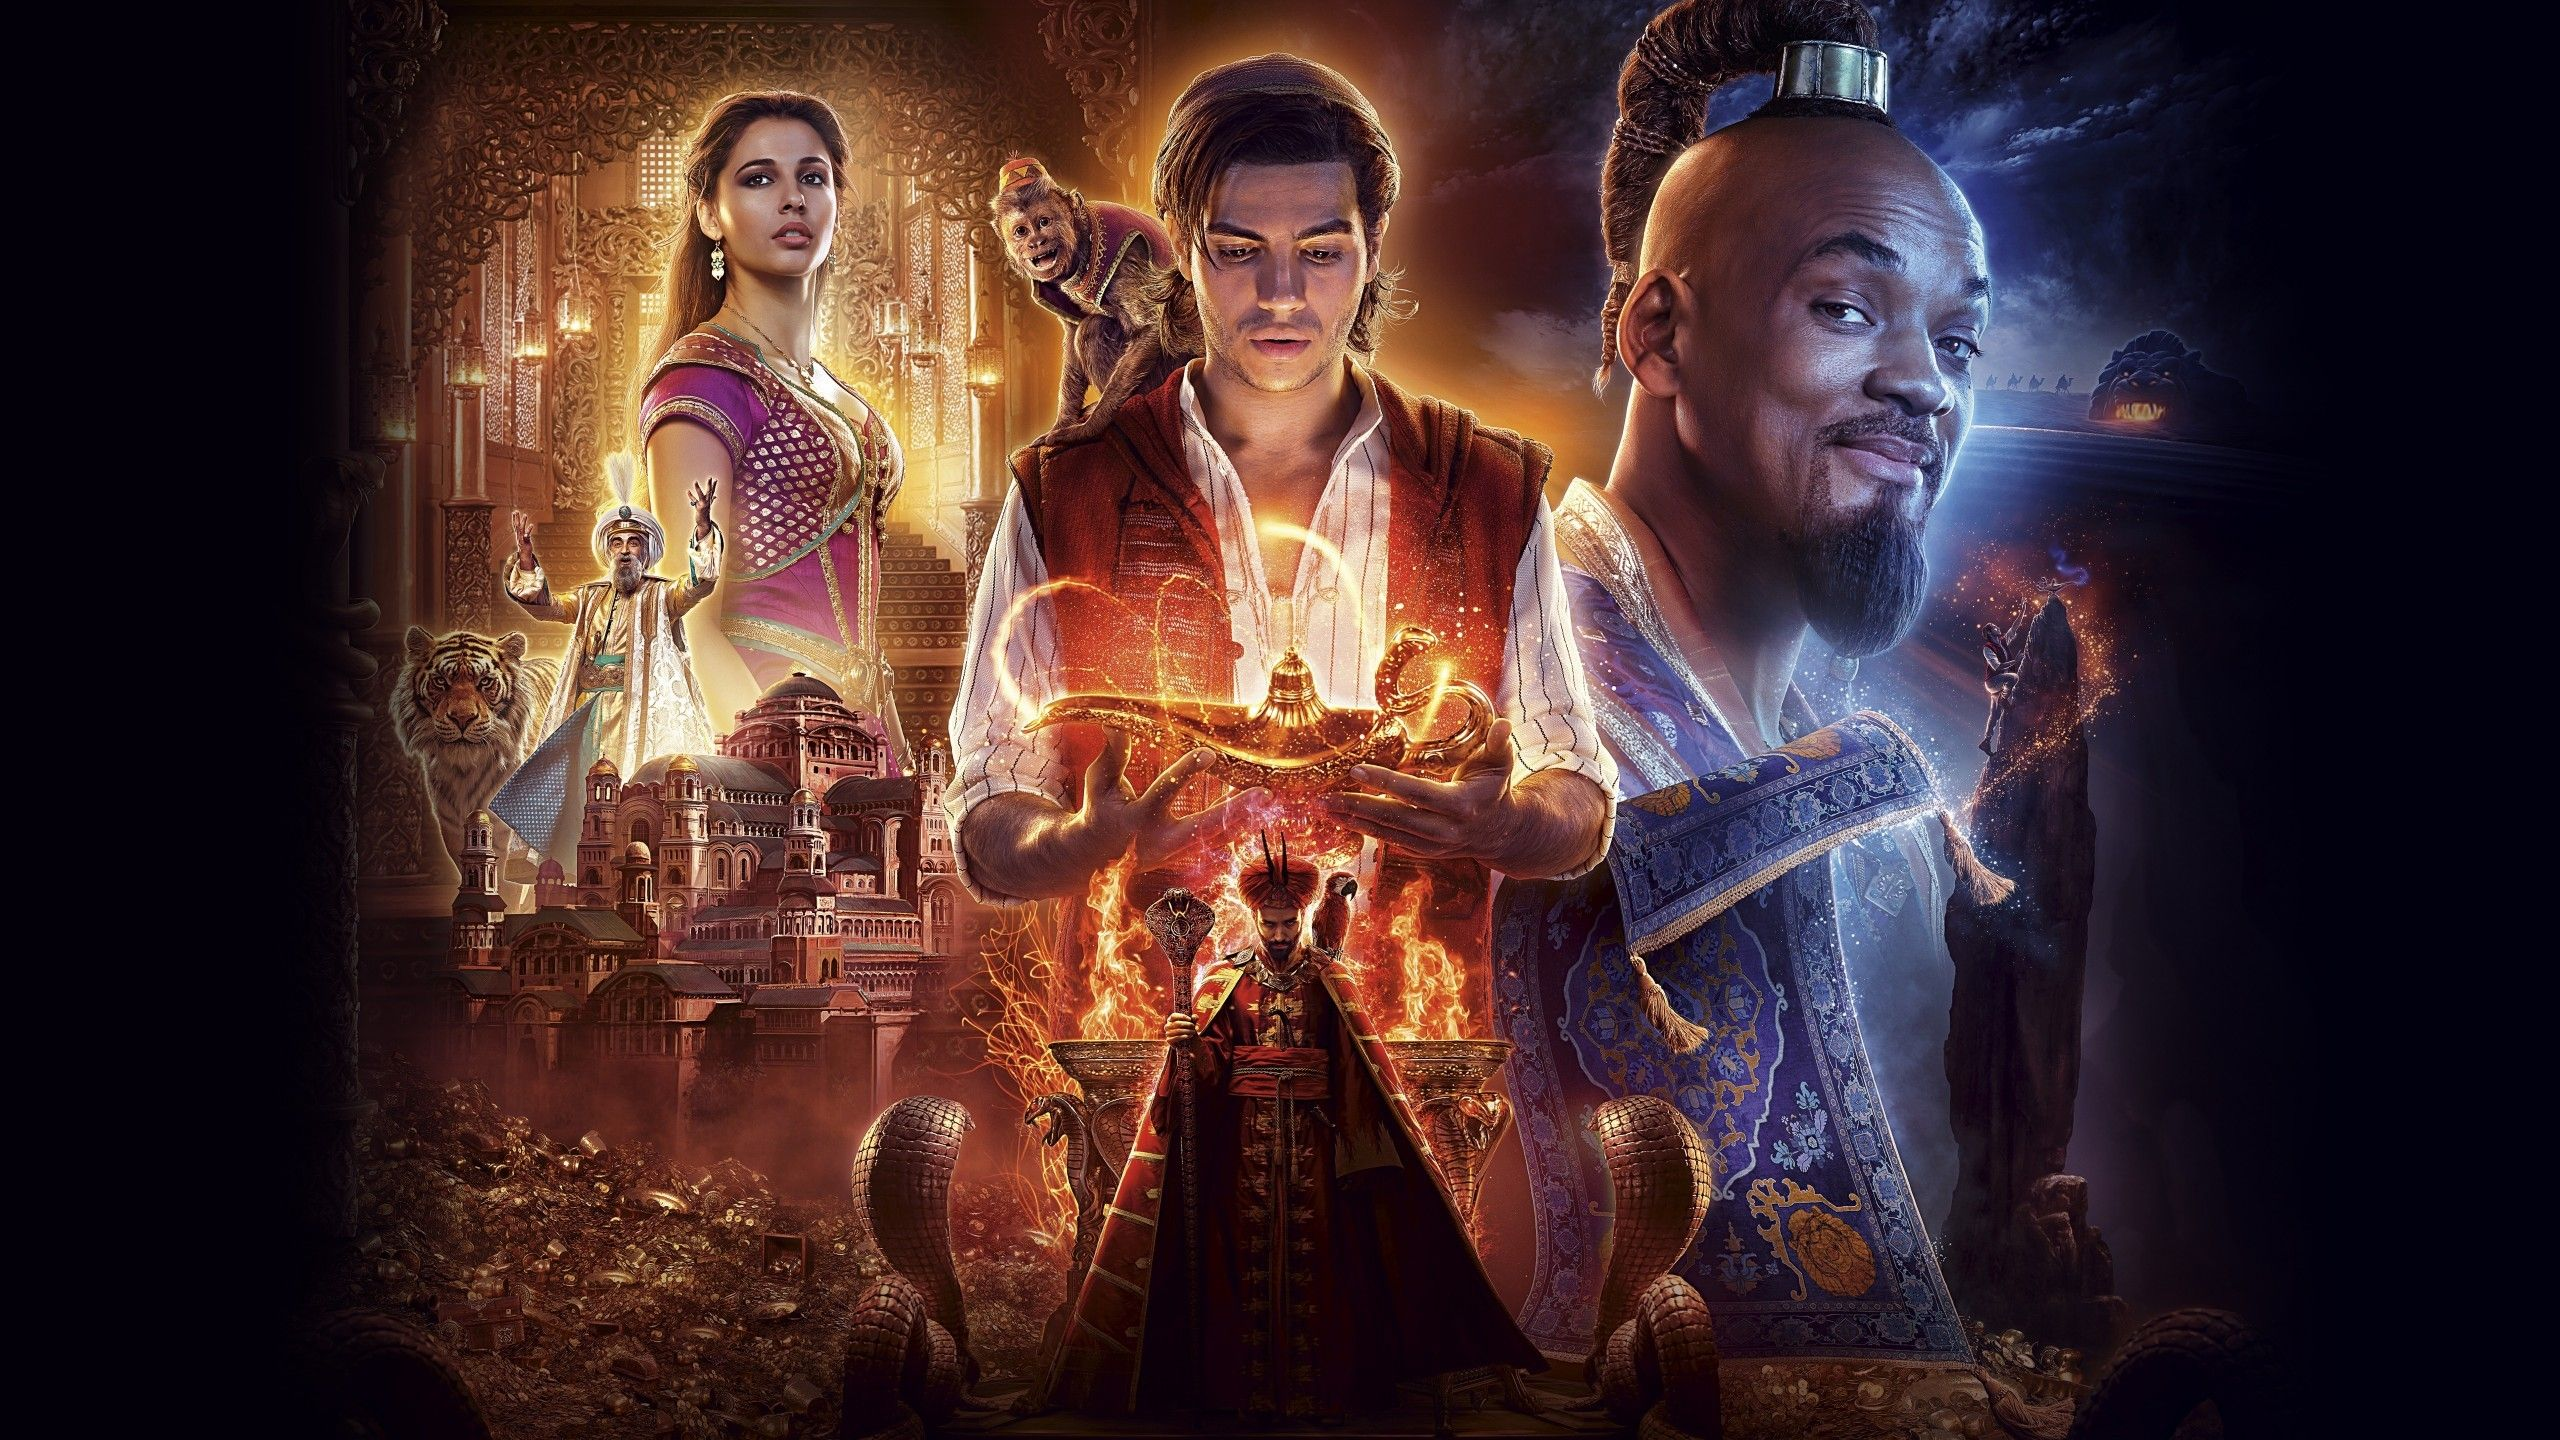 Will Smith Aladdin Wallpapers - Wallpaper Cave